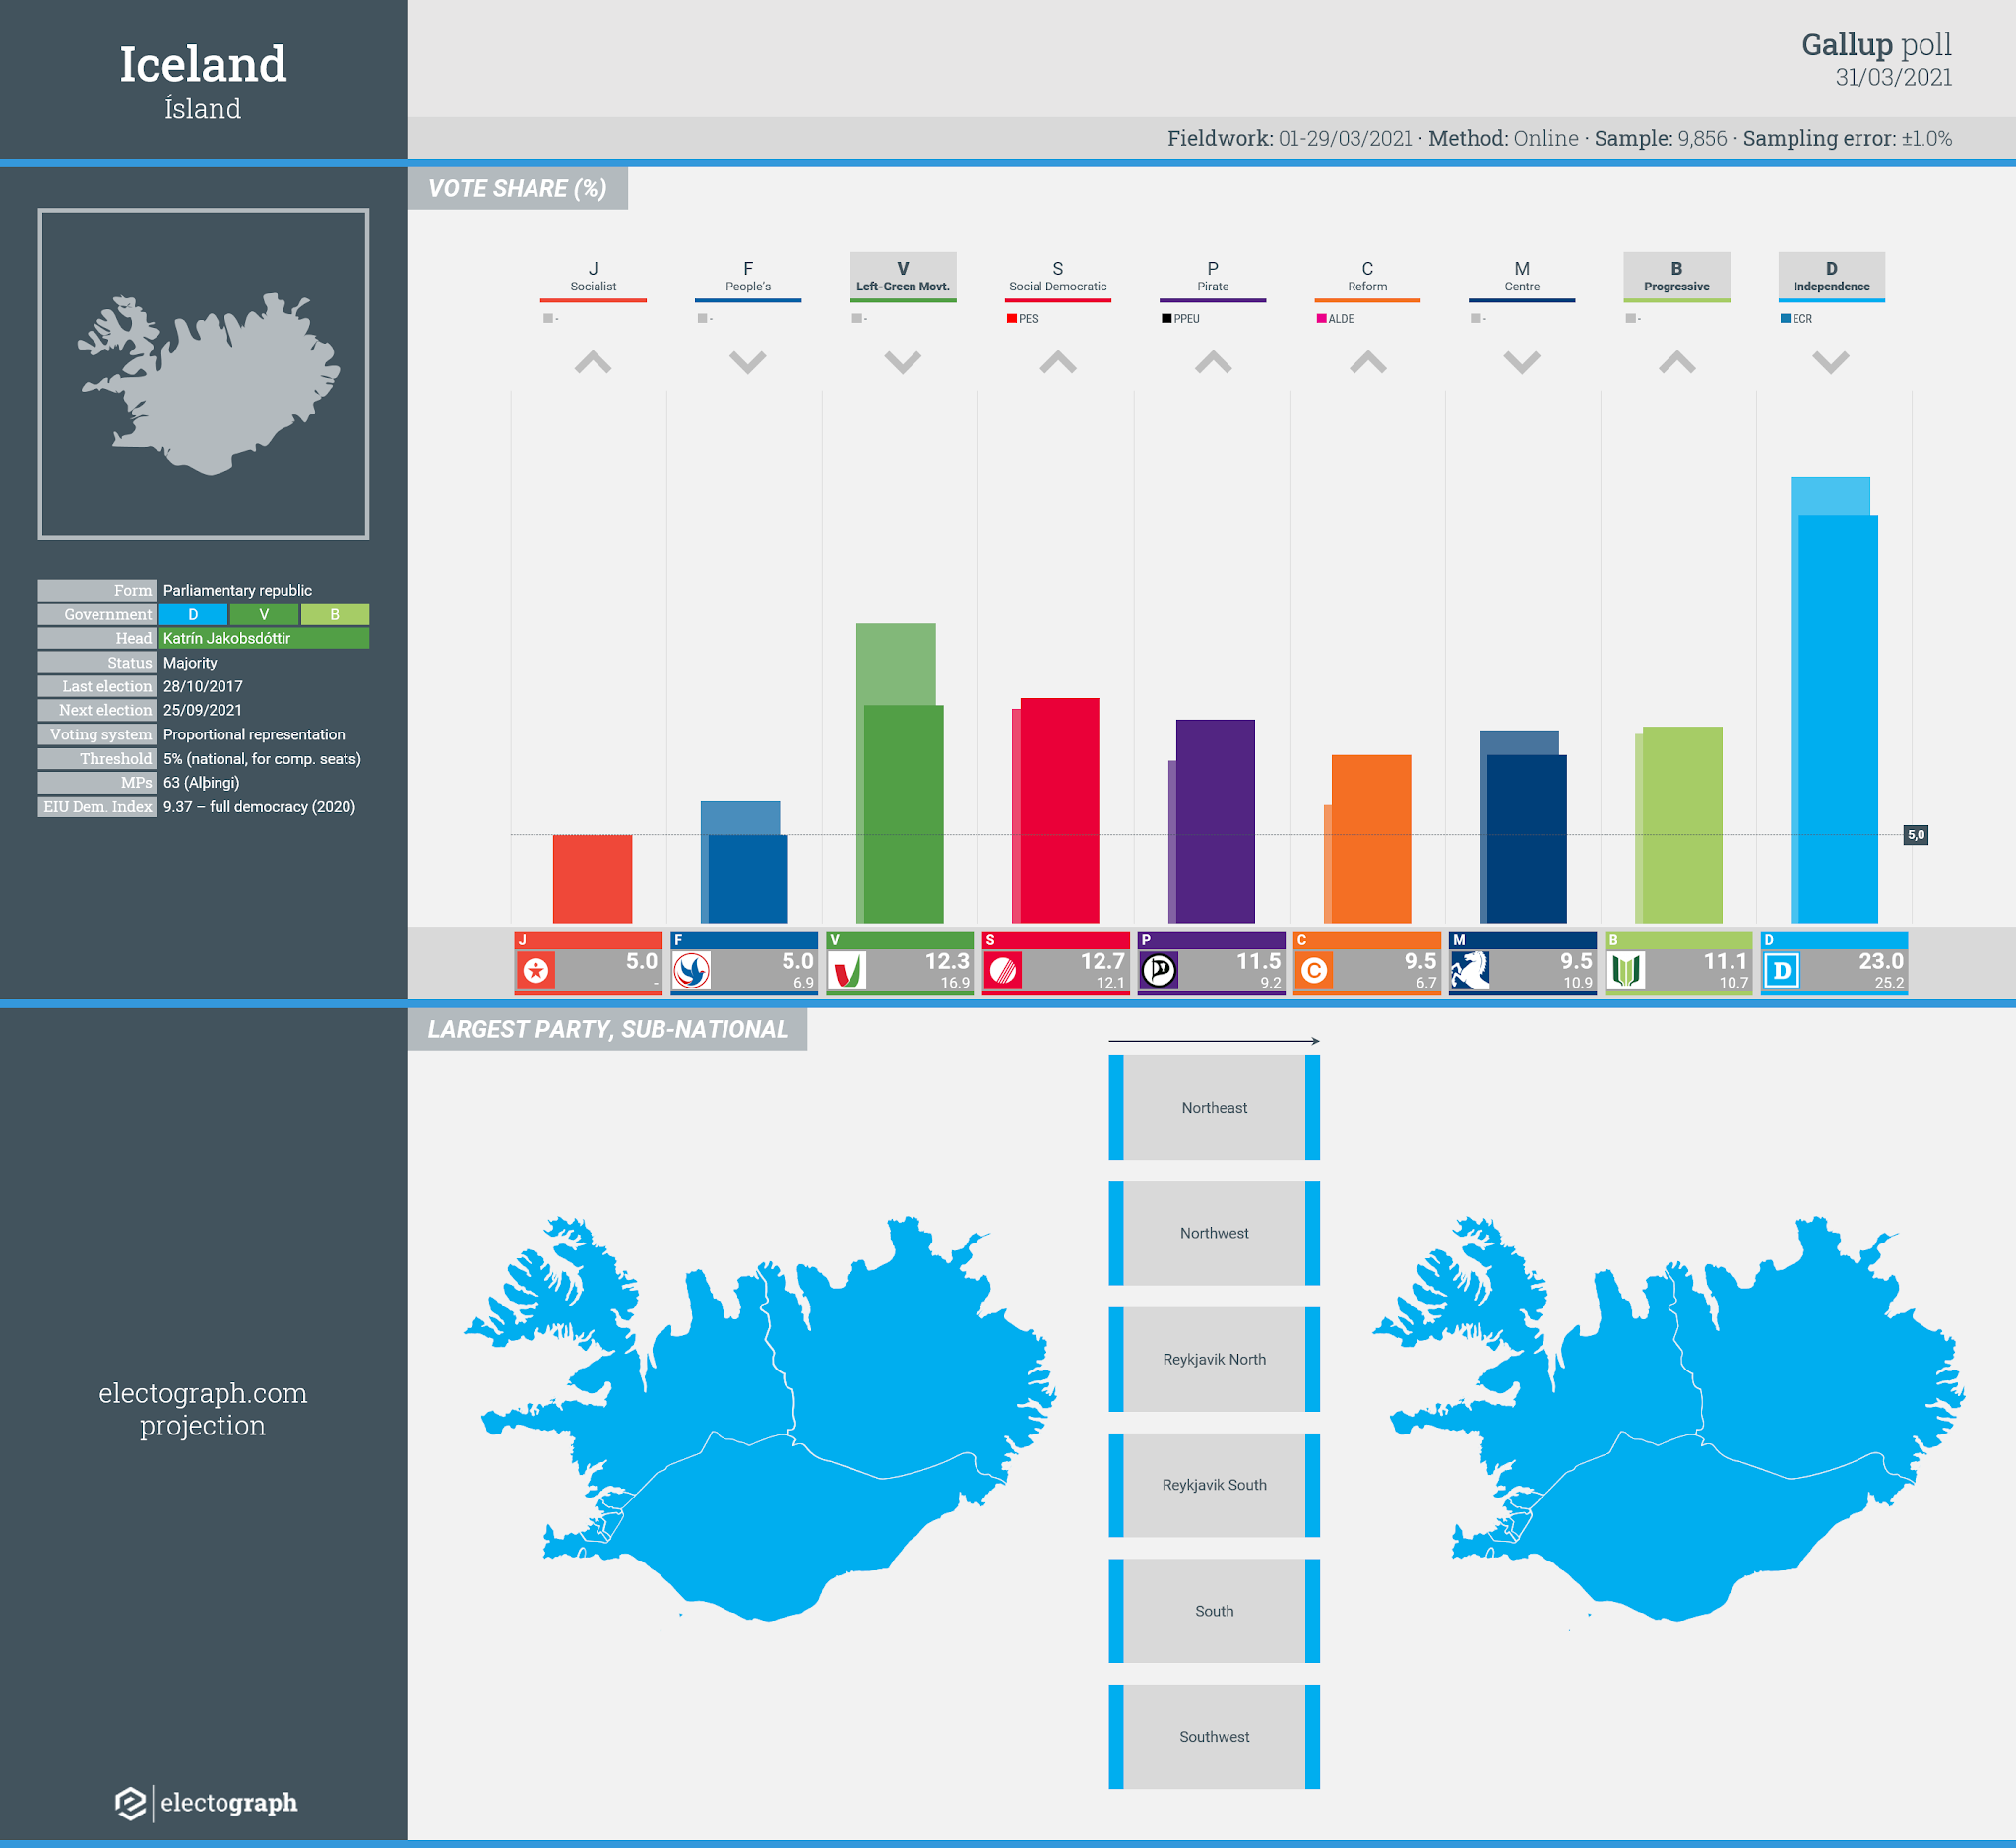 ICELAND: Gallup poll chart, 31 March 2021